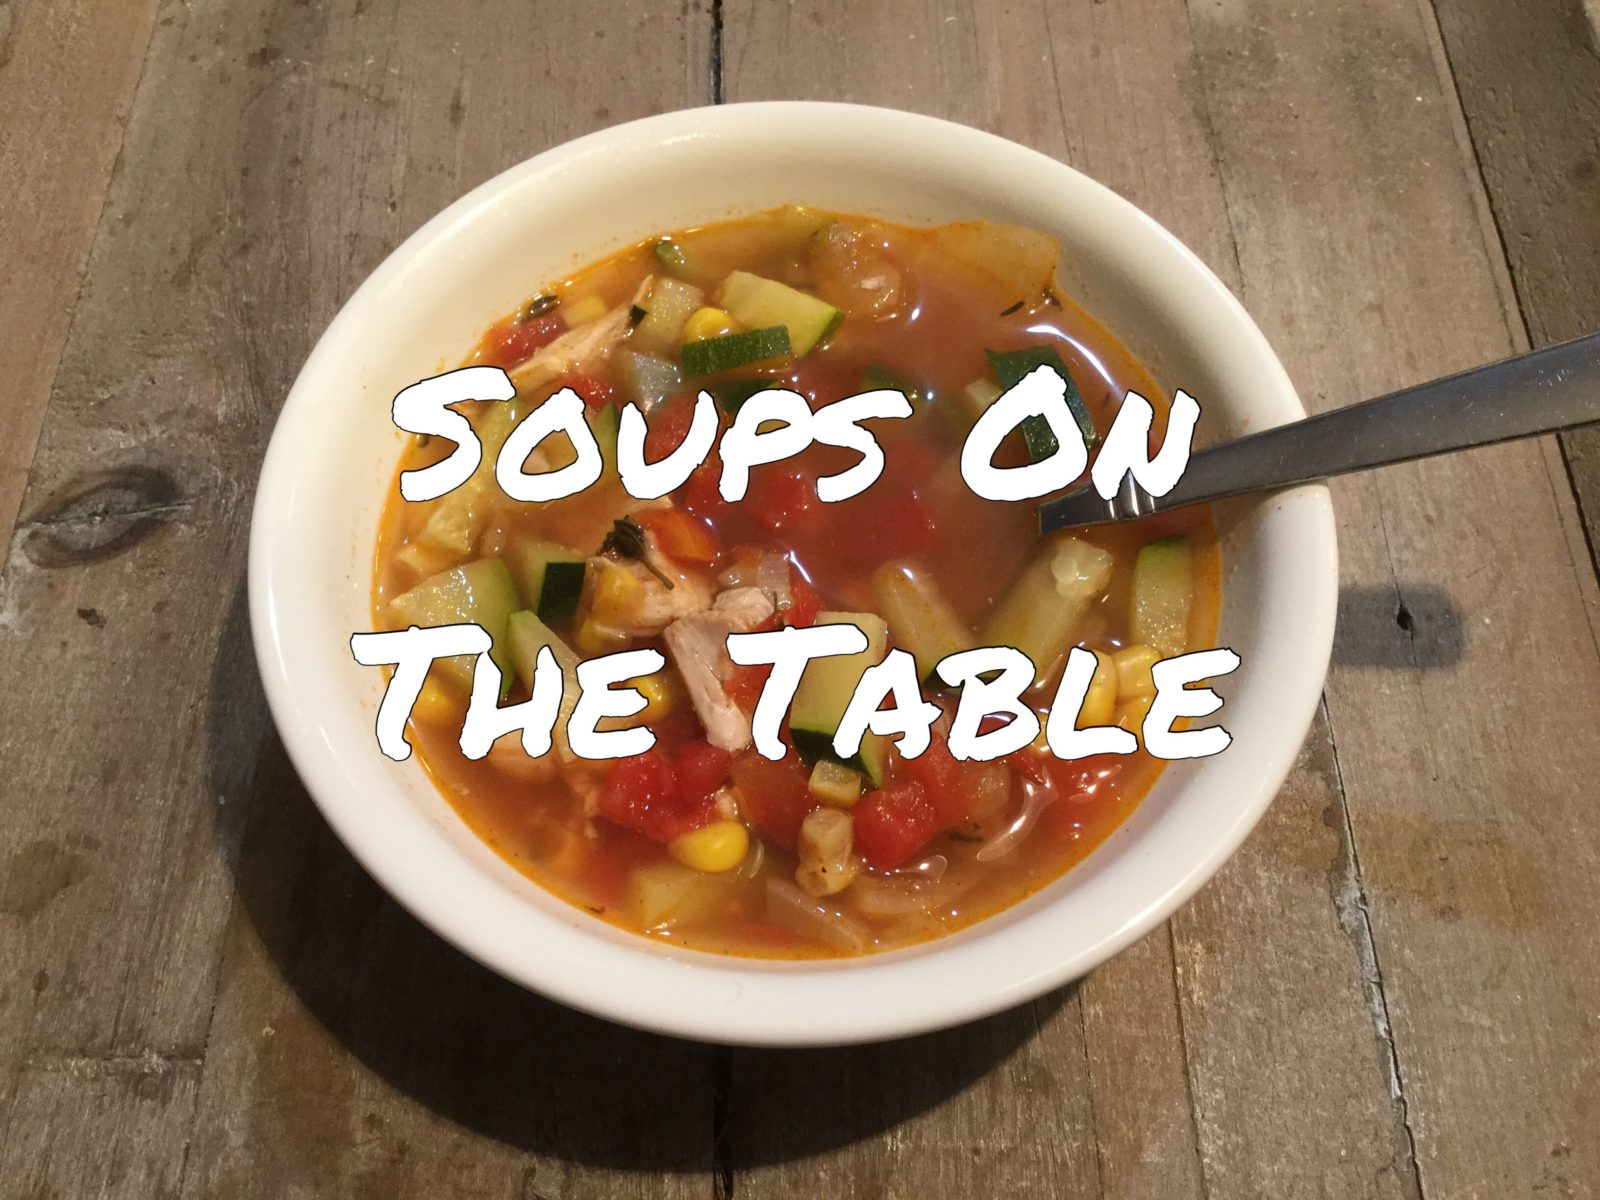 Soups On the Table